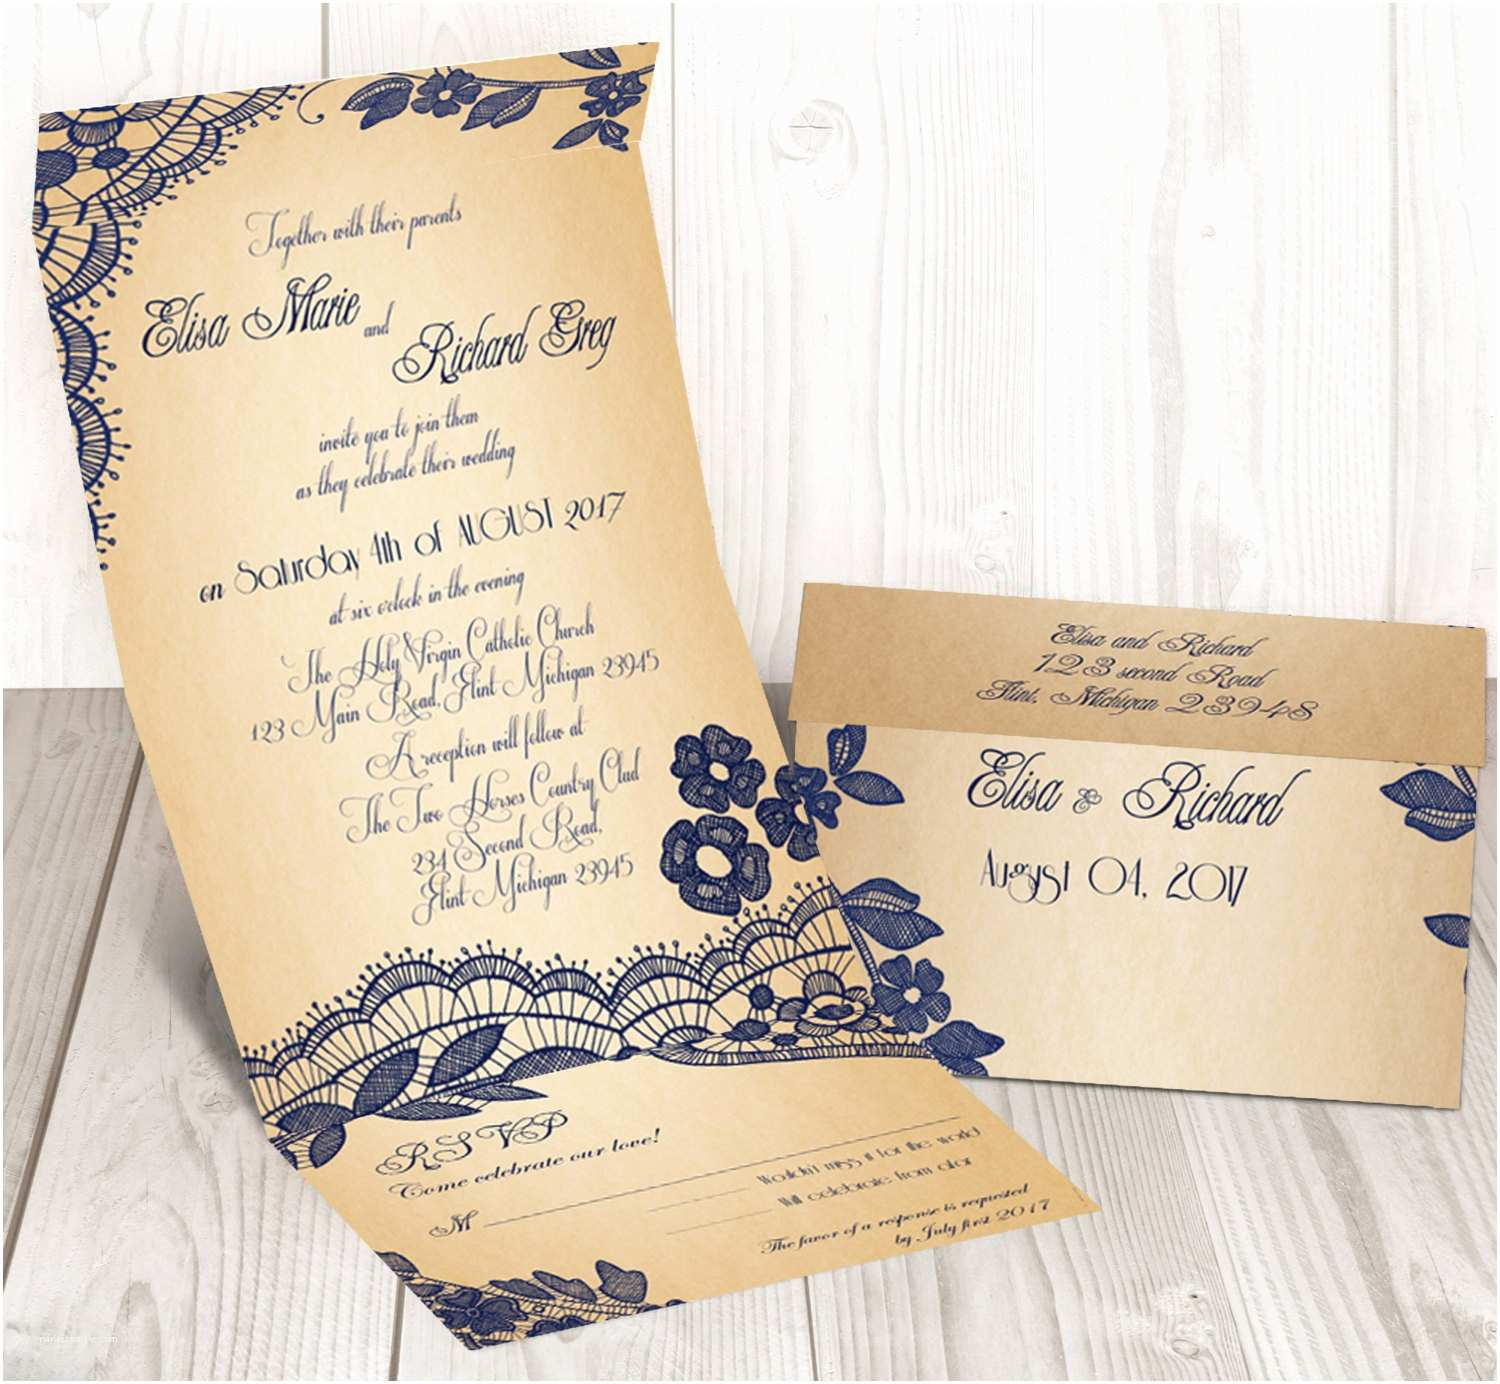 Seal and Send Wedding Invitations Elegant Lace Seal and Send Wedding Invitation by